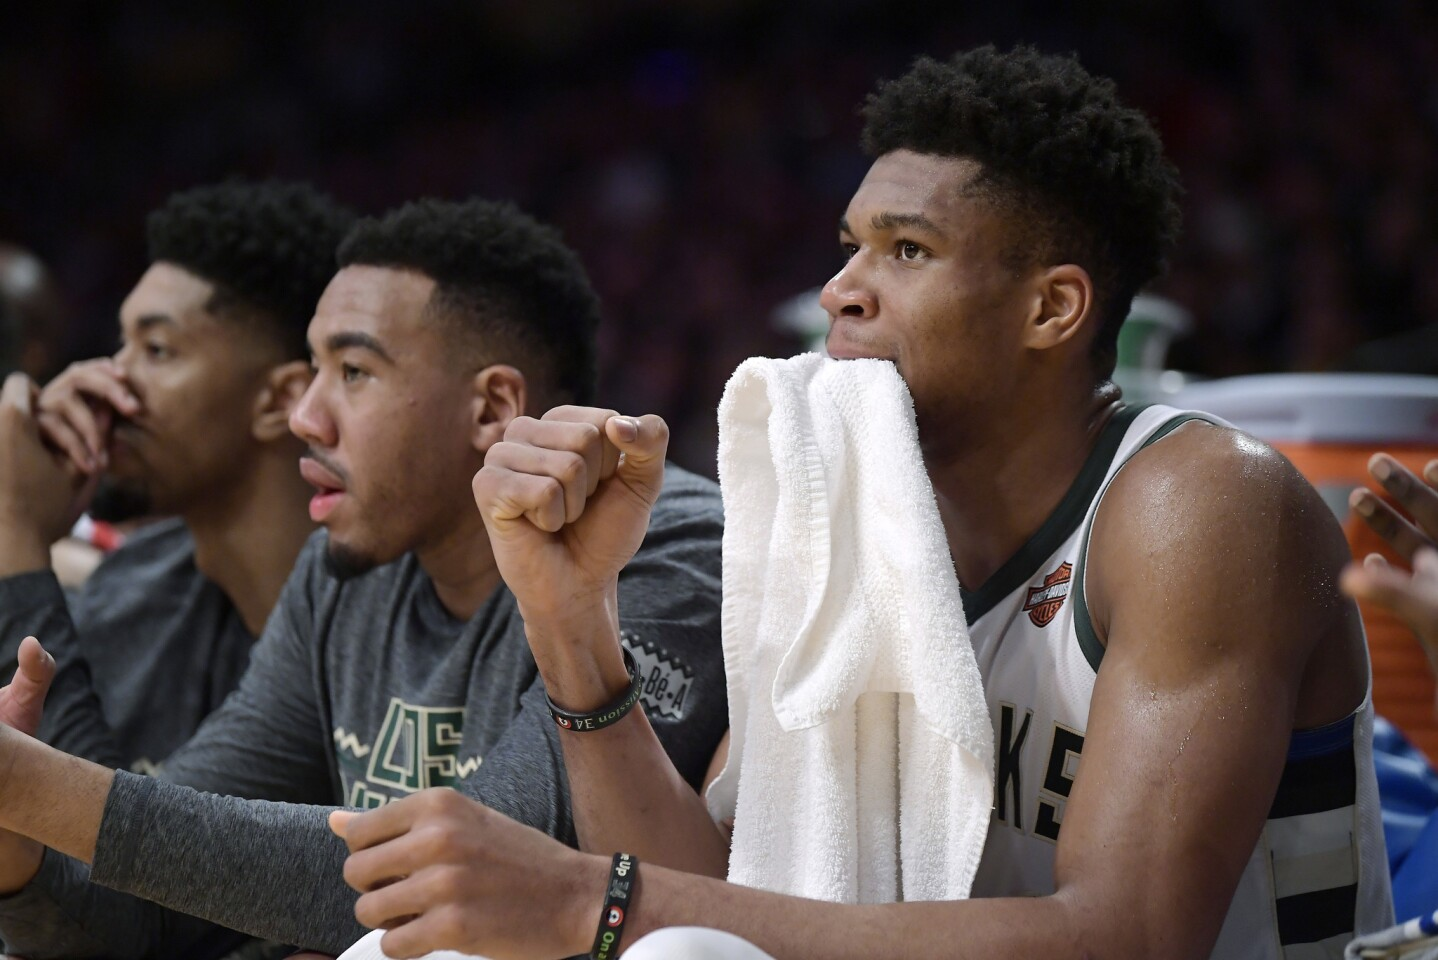 Milwaukee Bucks forward Giannis Antetokounmpo, right, celebrates from the bench after the Bucks scored during the second half of an NBA basketball game against the Los Angeles Lakers on Friday, March 1, 2019, in Los Angeles. The Bucks won 131-120. (AP Photo/Mark J. Terrill)